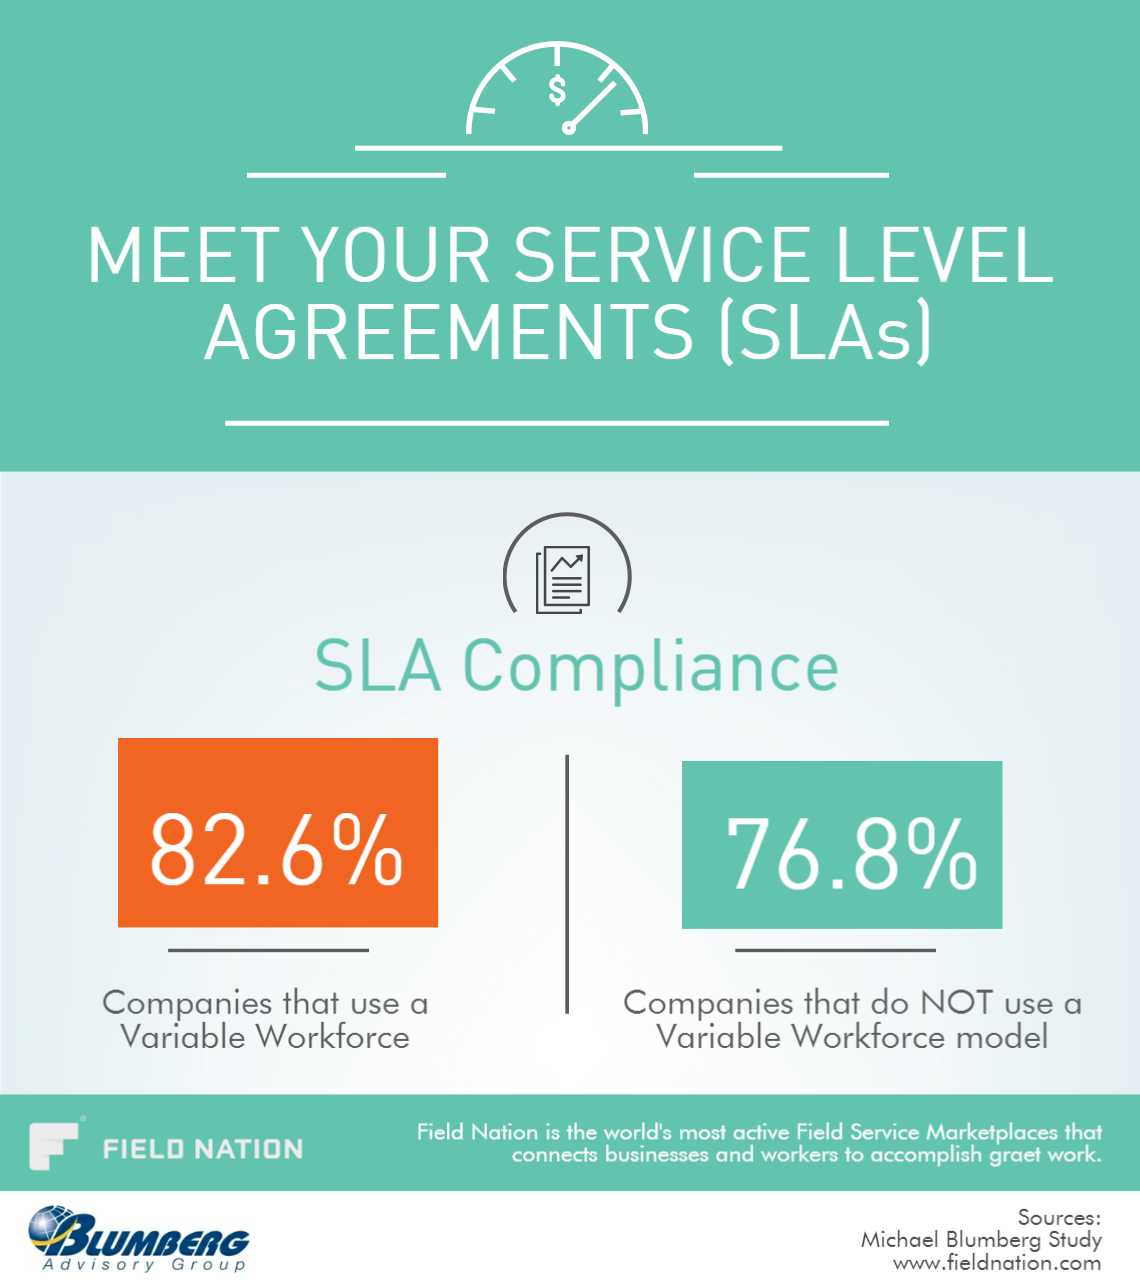 Meet Your Service Level Agreements Slas With Contingent Labor